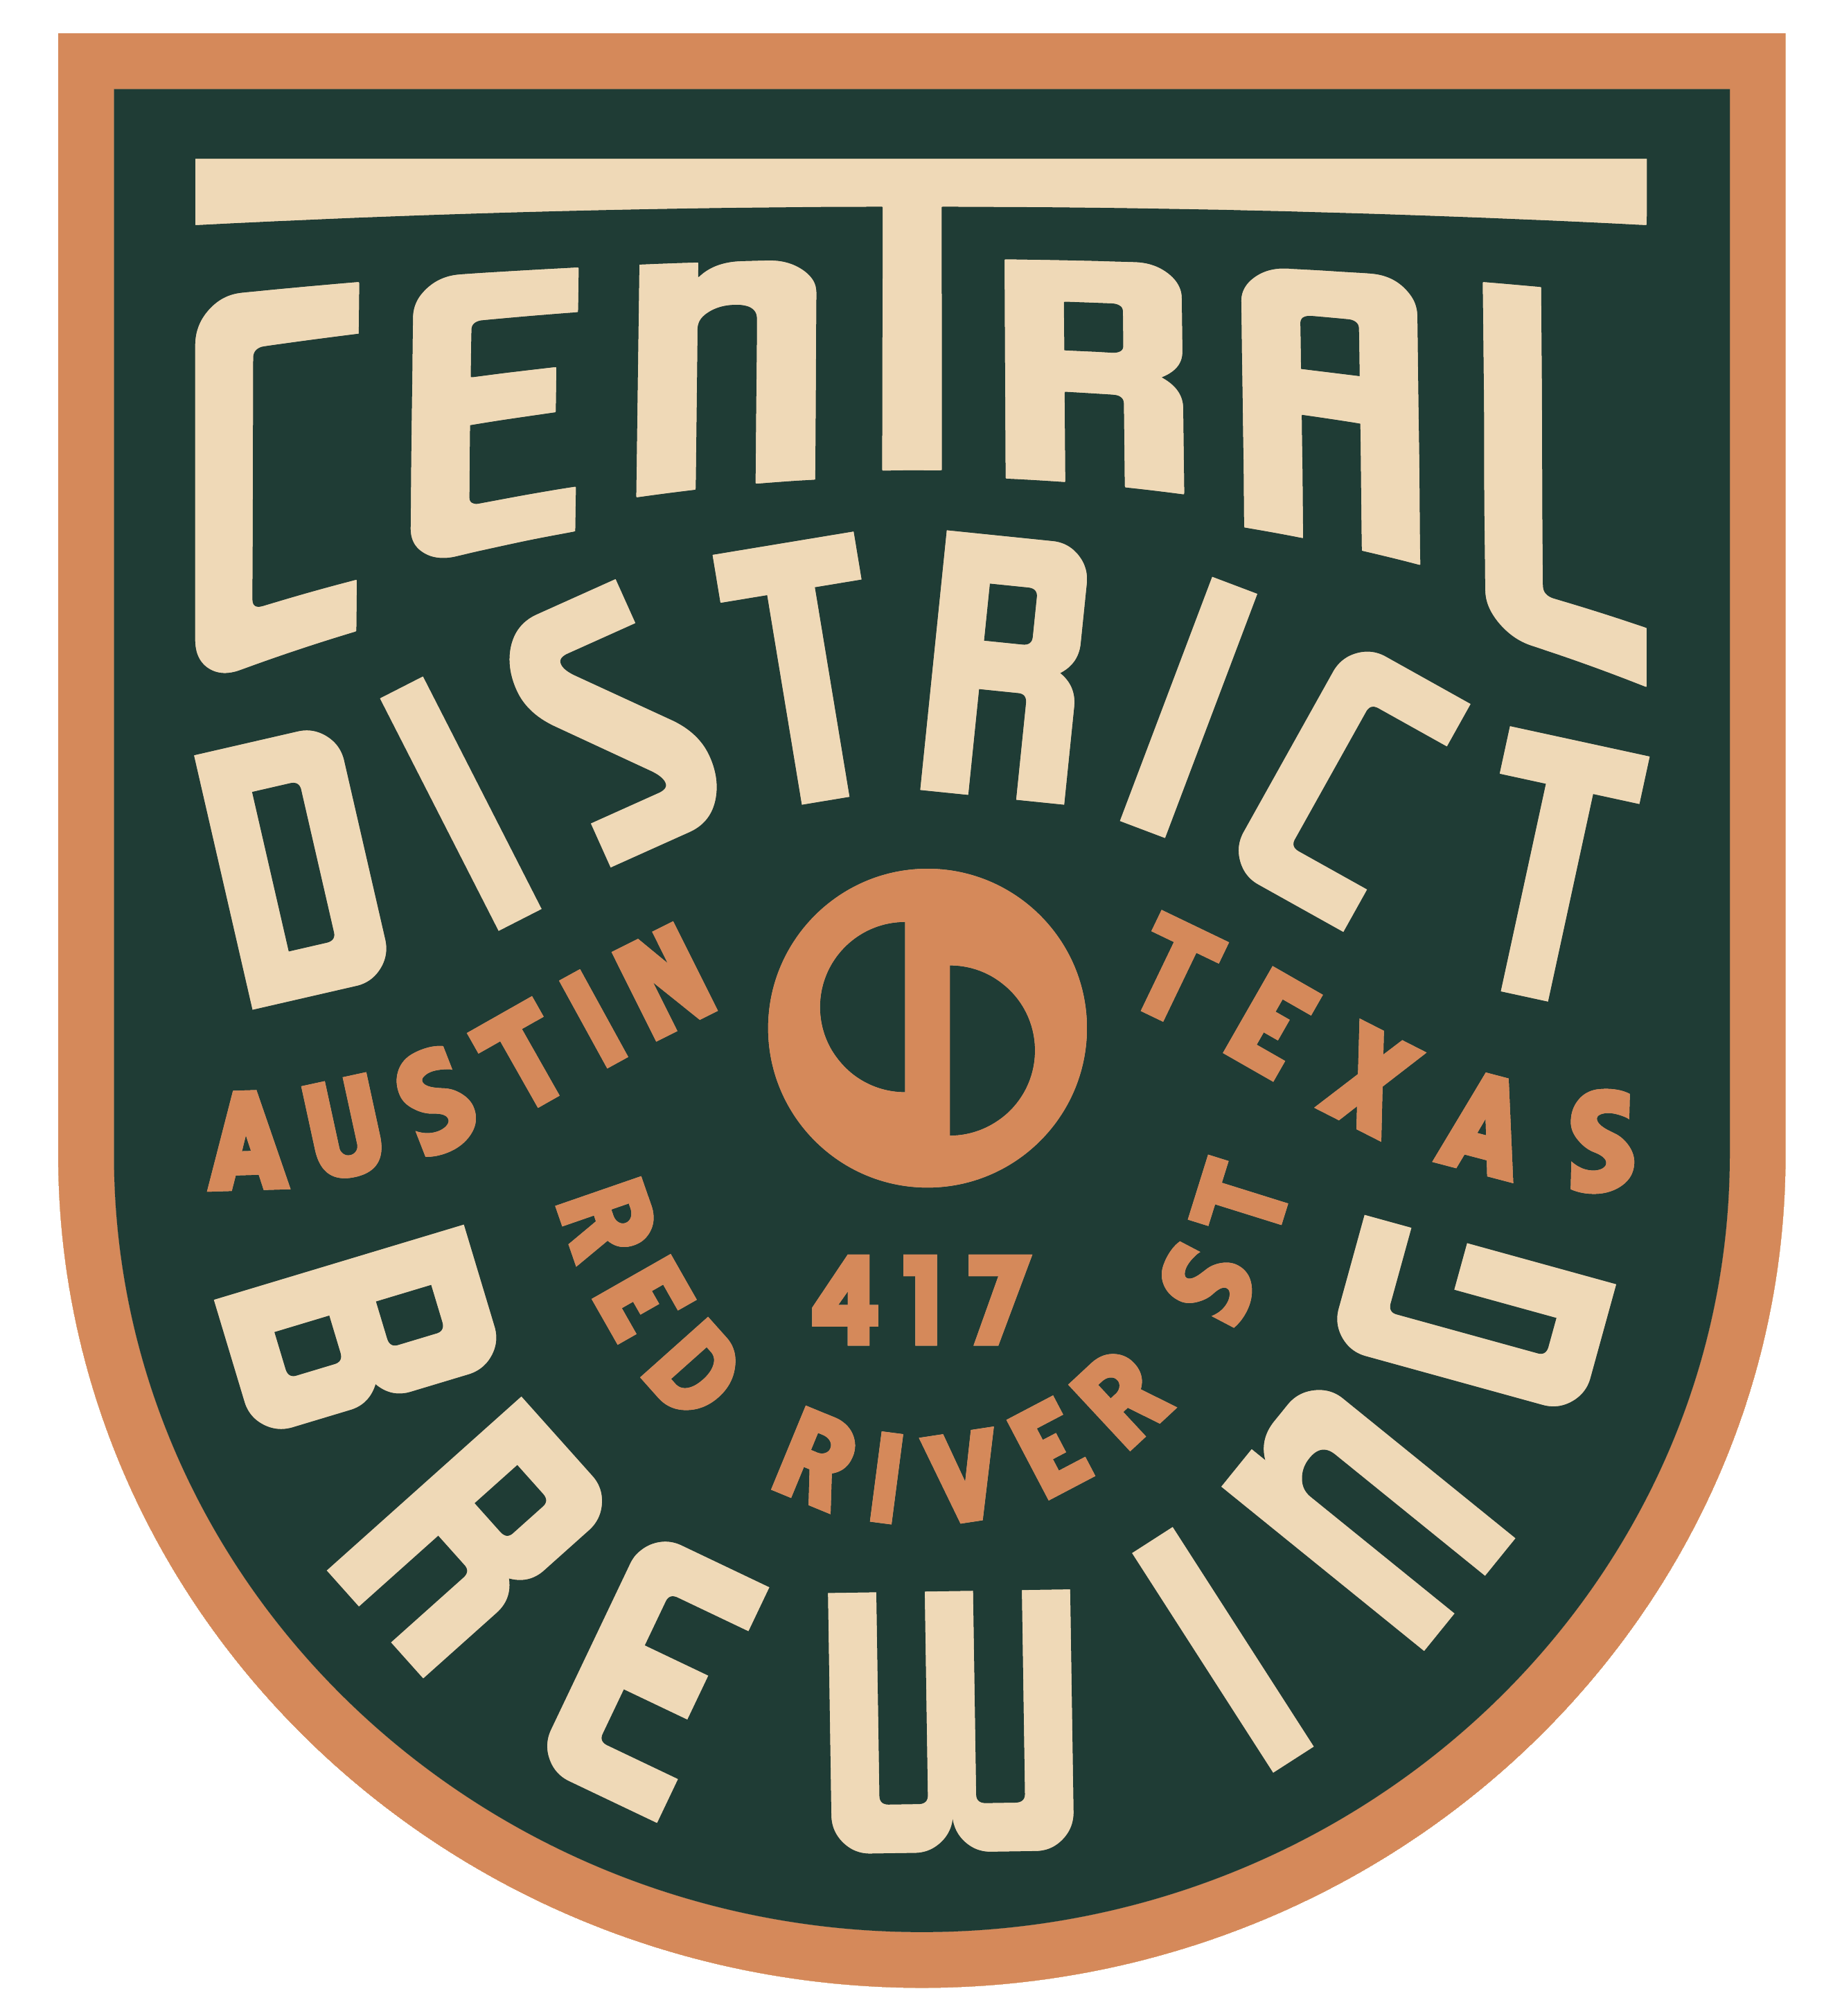 Central District Brewing